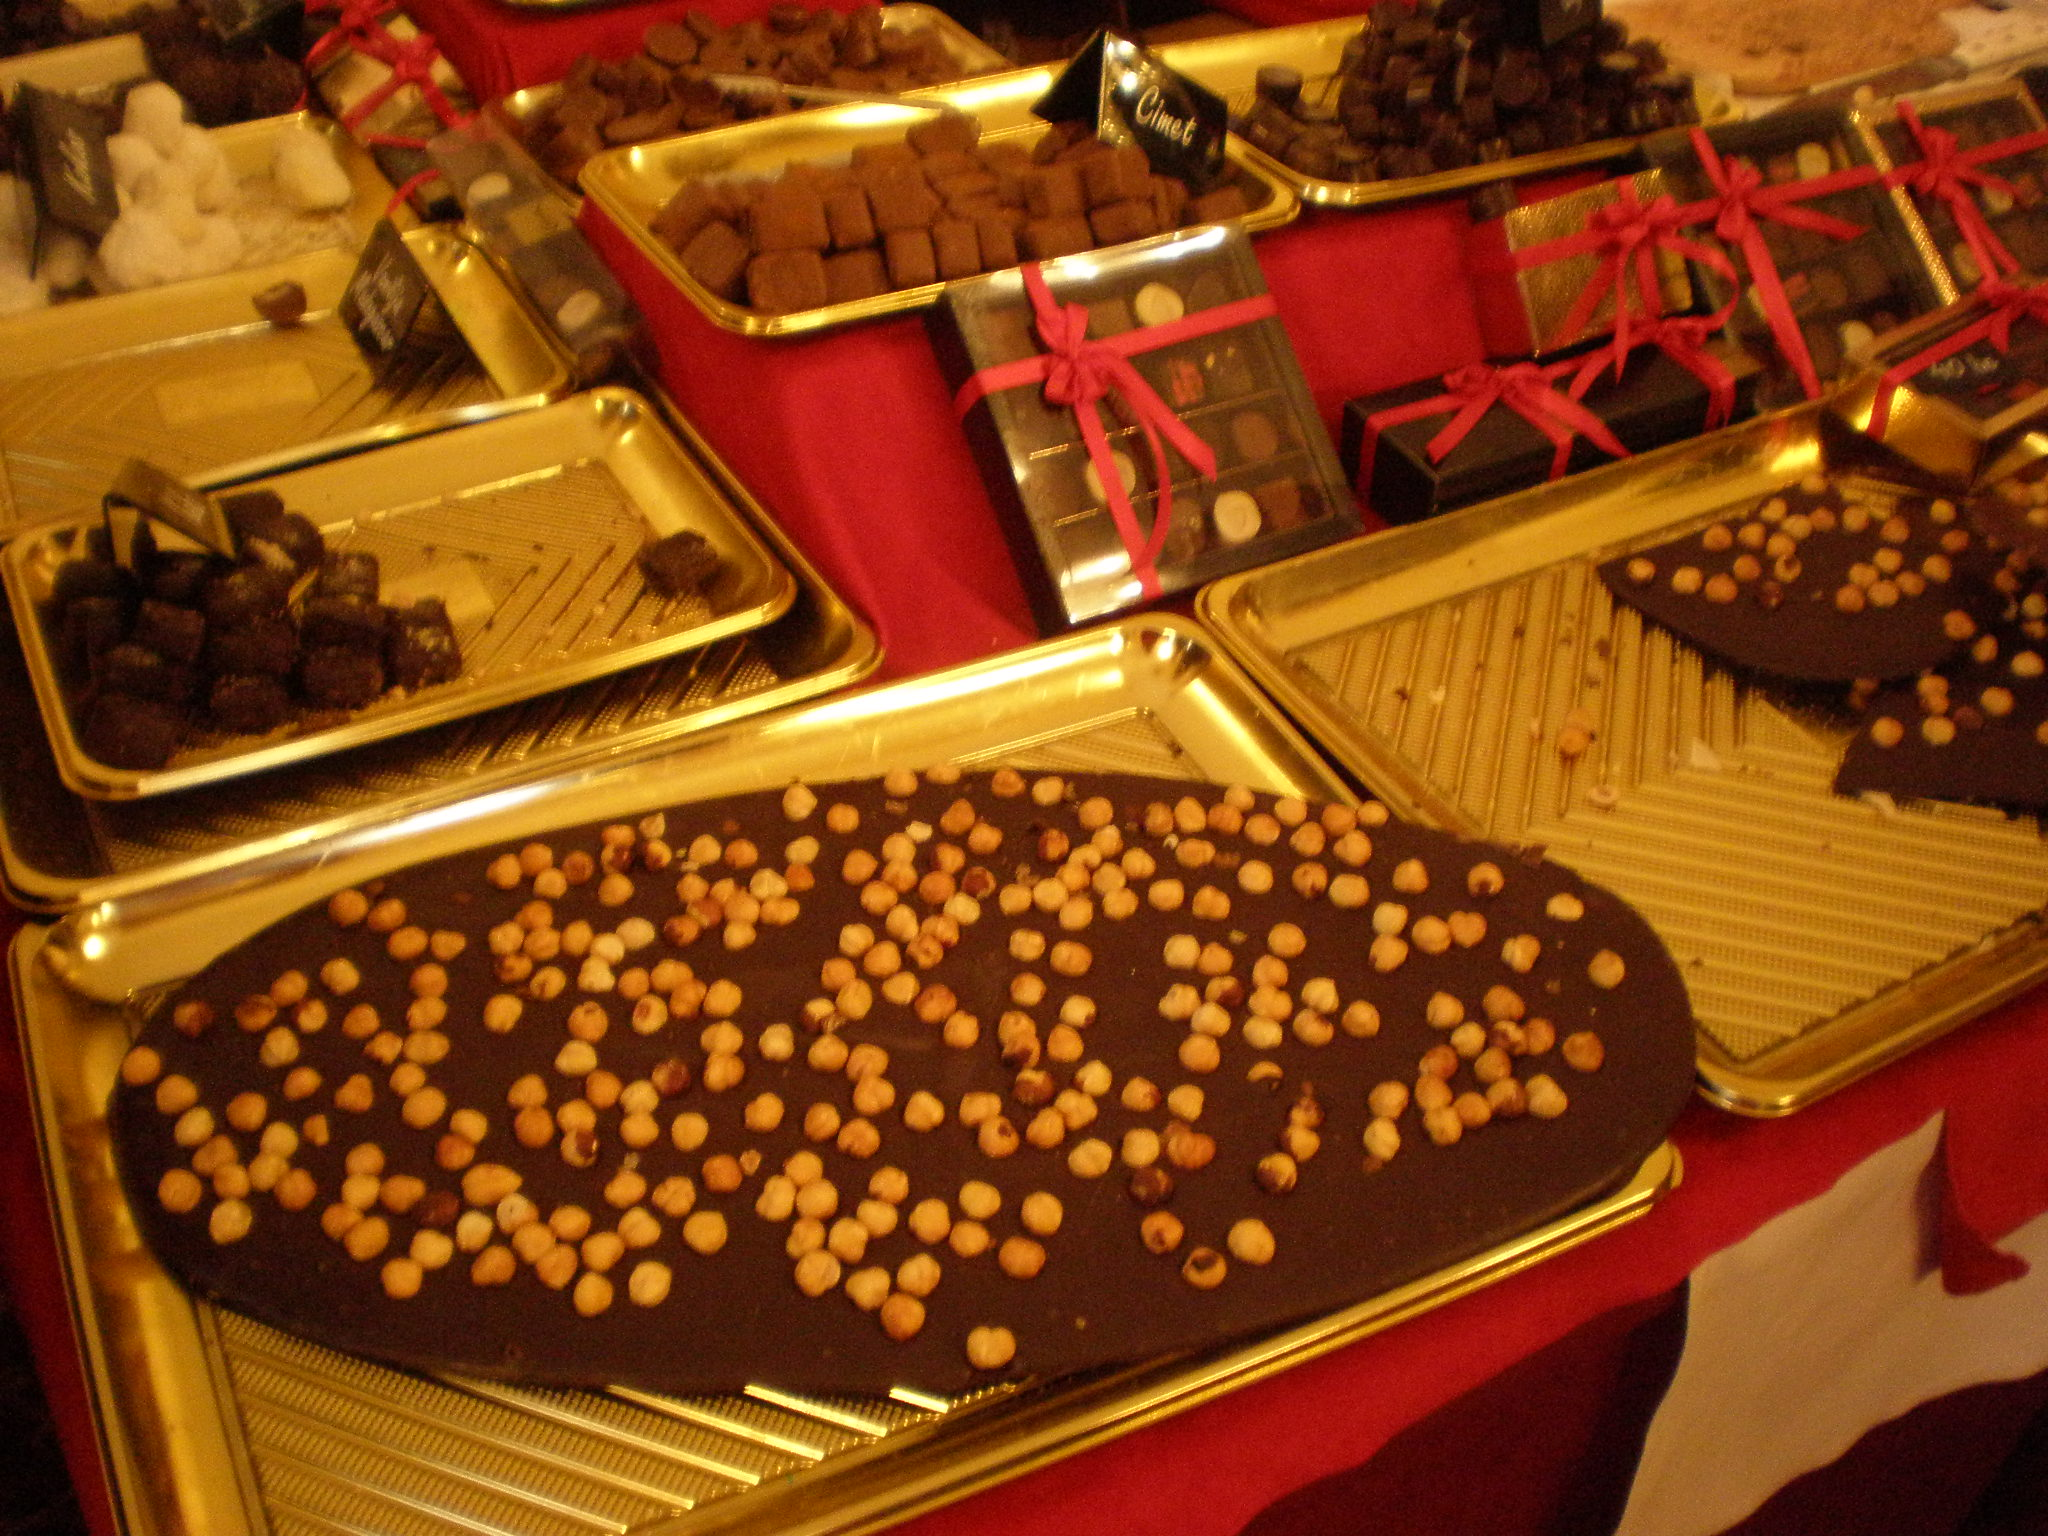 Chocolate Festival in Opatija – the Red Phone Box travels